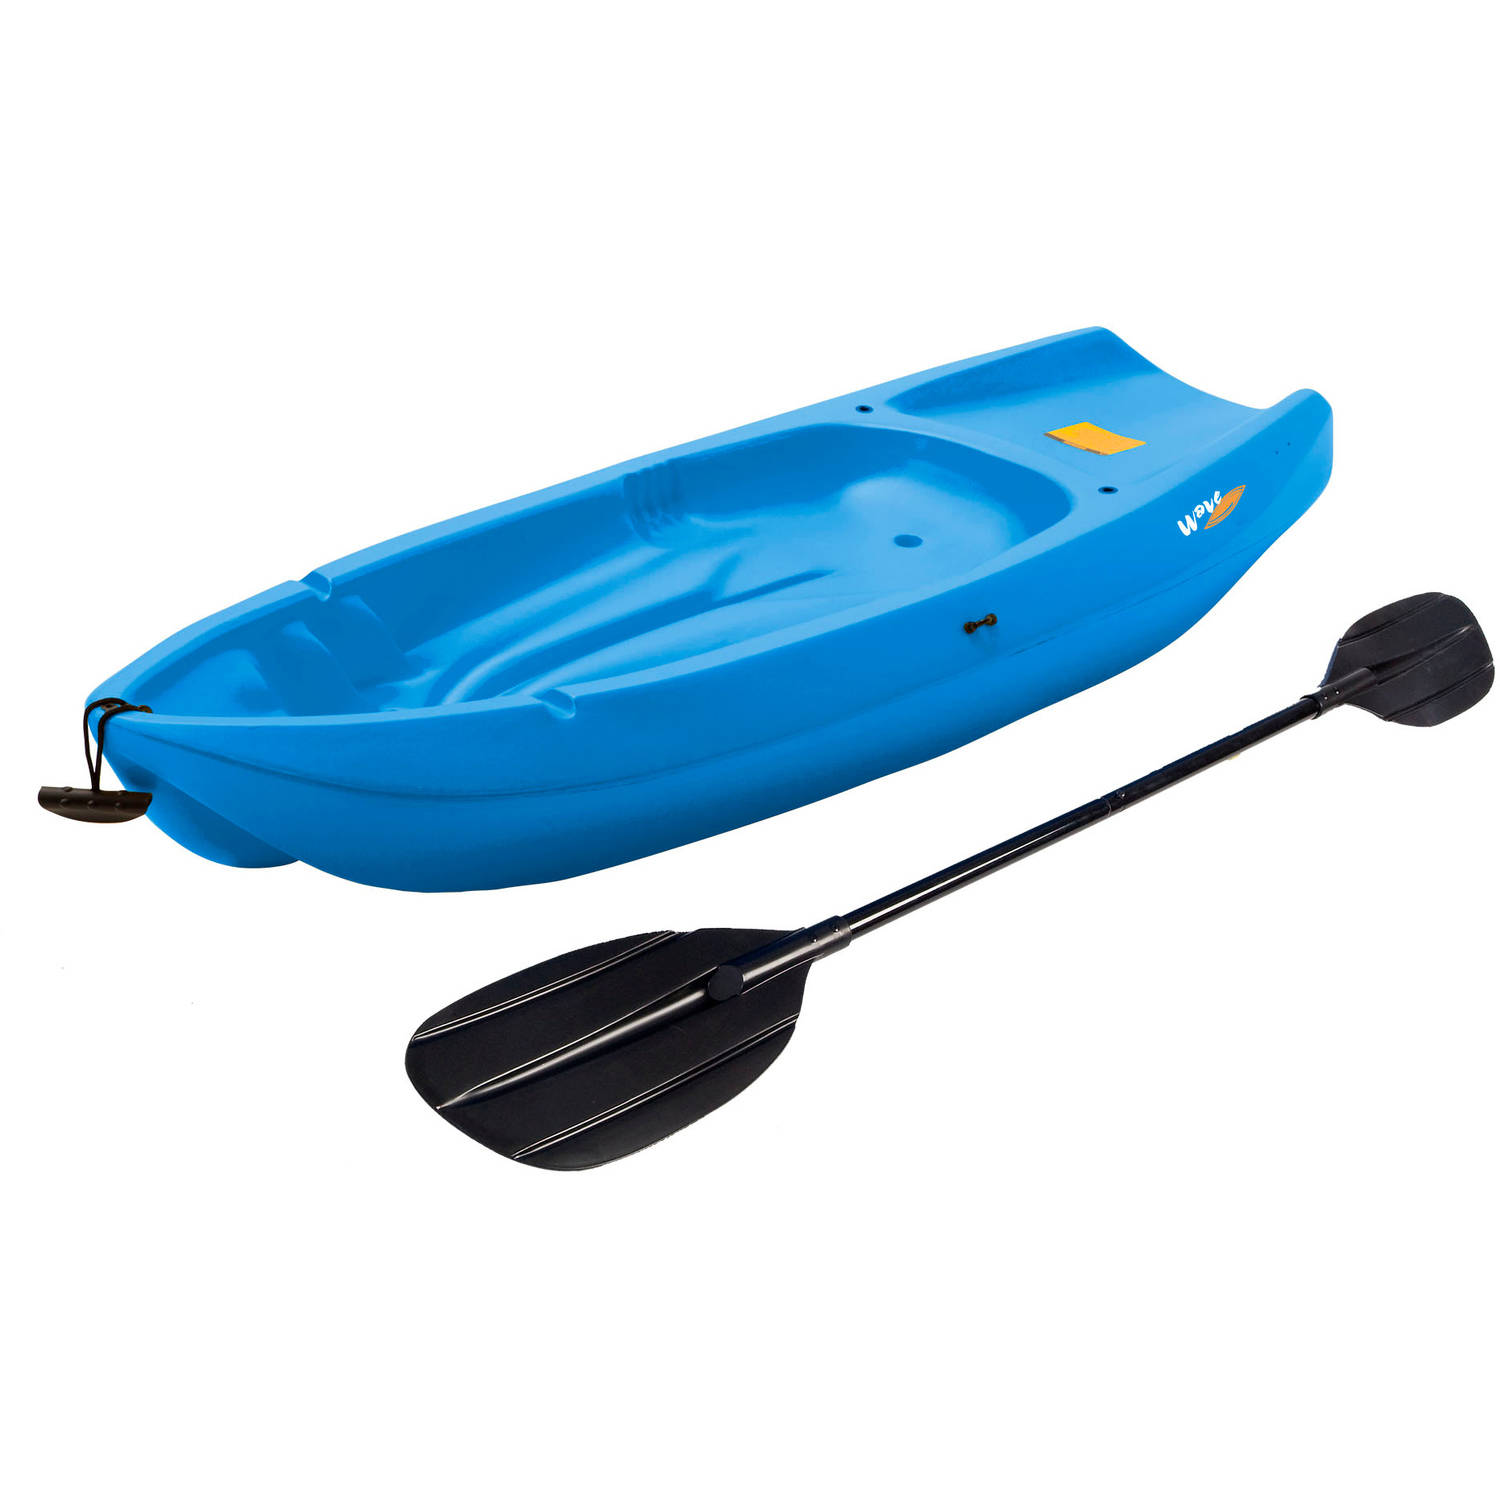 Lifetime, 6', 1-Man Wave, Youth Kayak, with Bonus Paddle